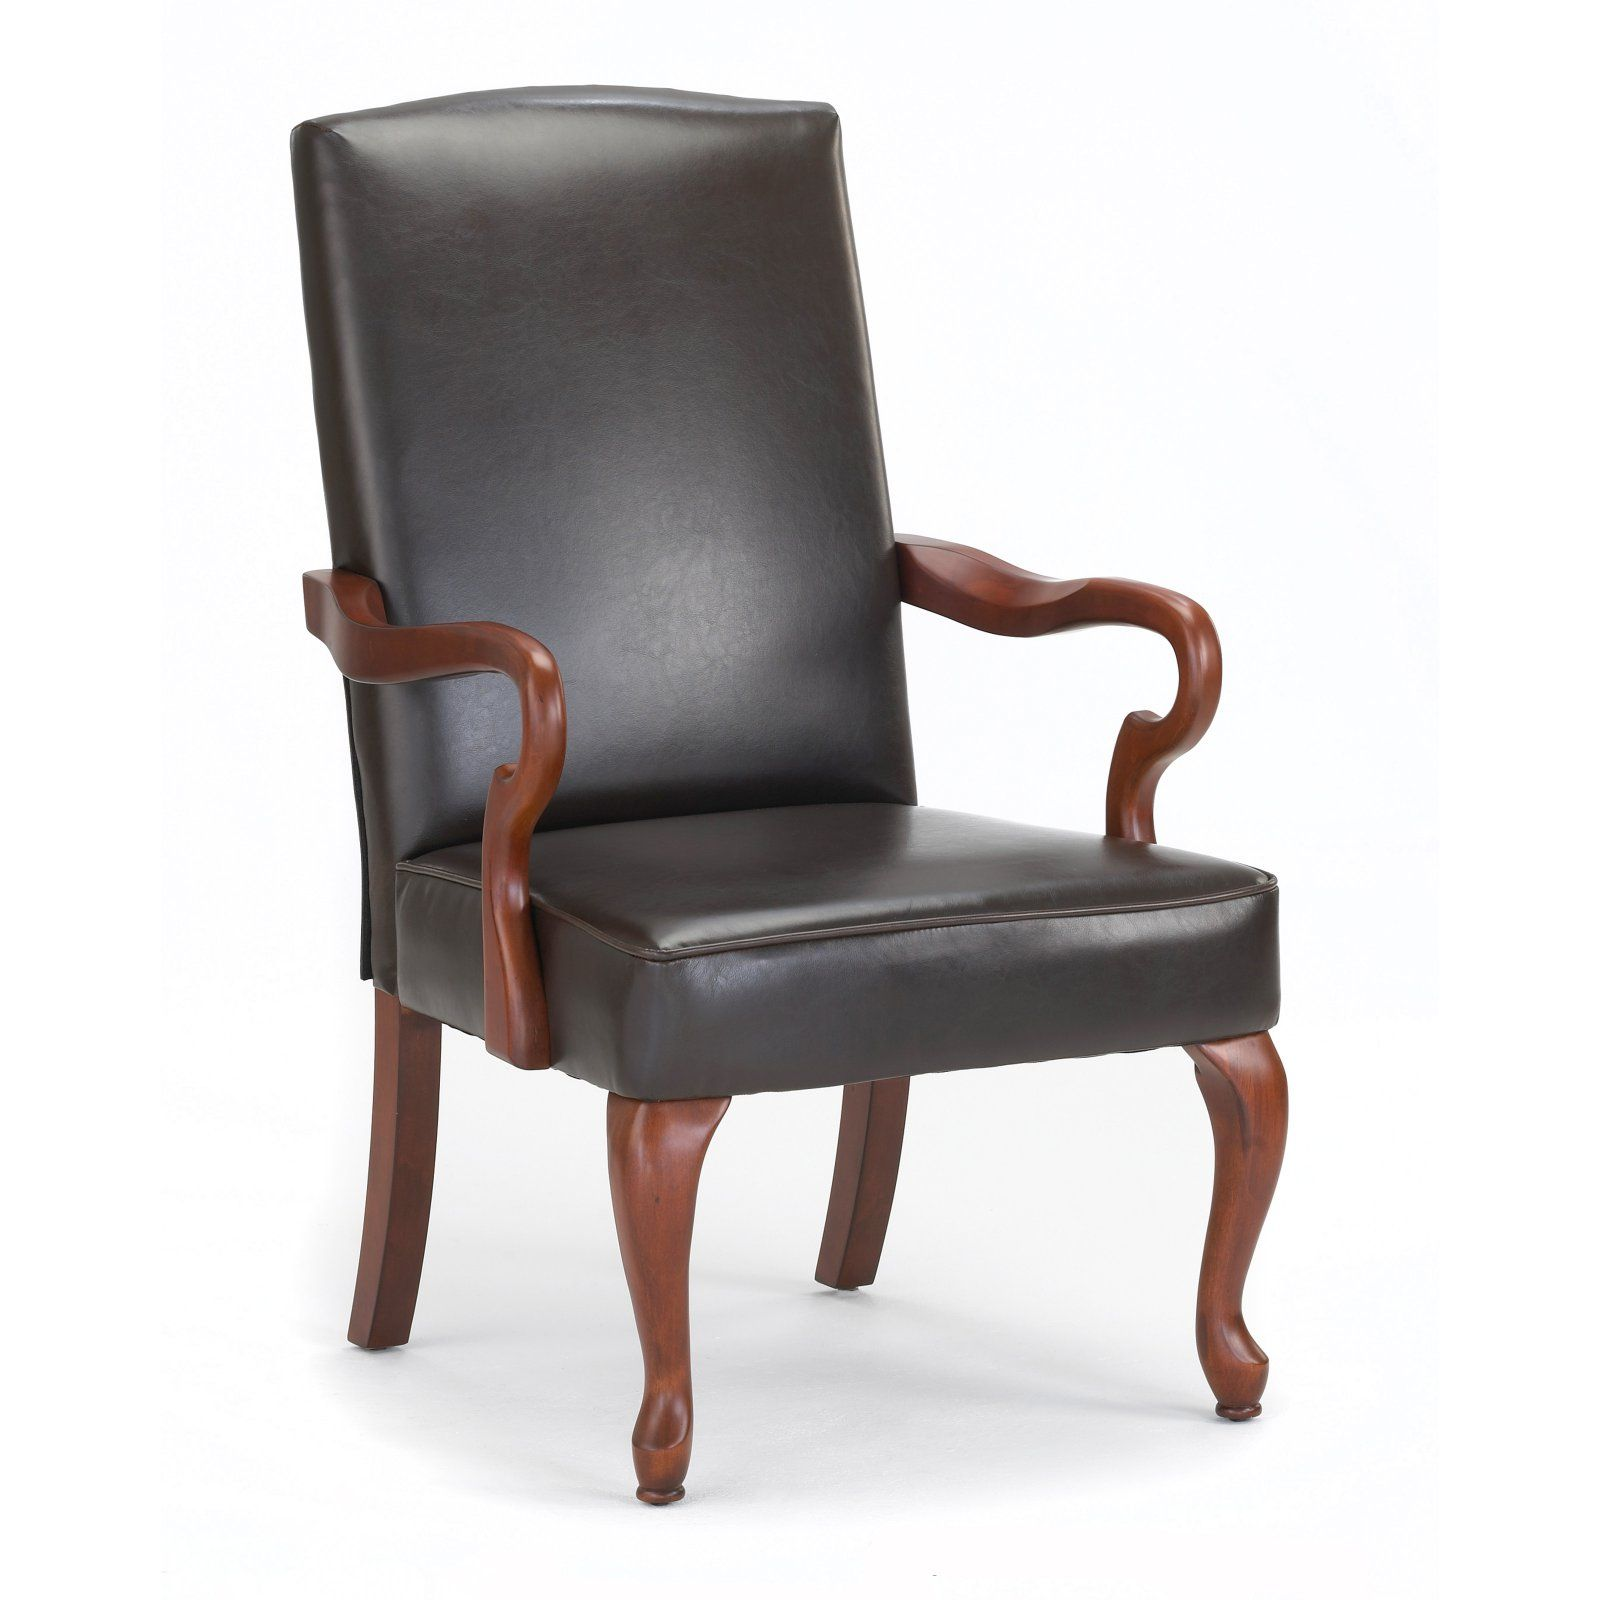 Fantastic Comfort Pointe Derby Brown Leather Gooseneck Arm Chair In Dailytribune Chair Design For Home Dailytribuneorg